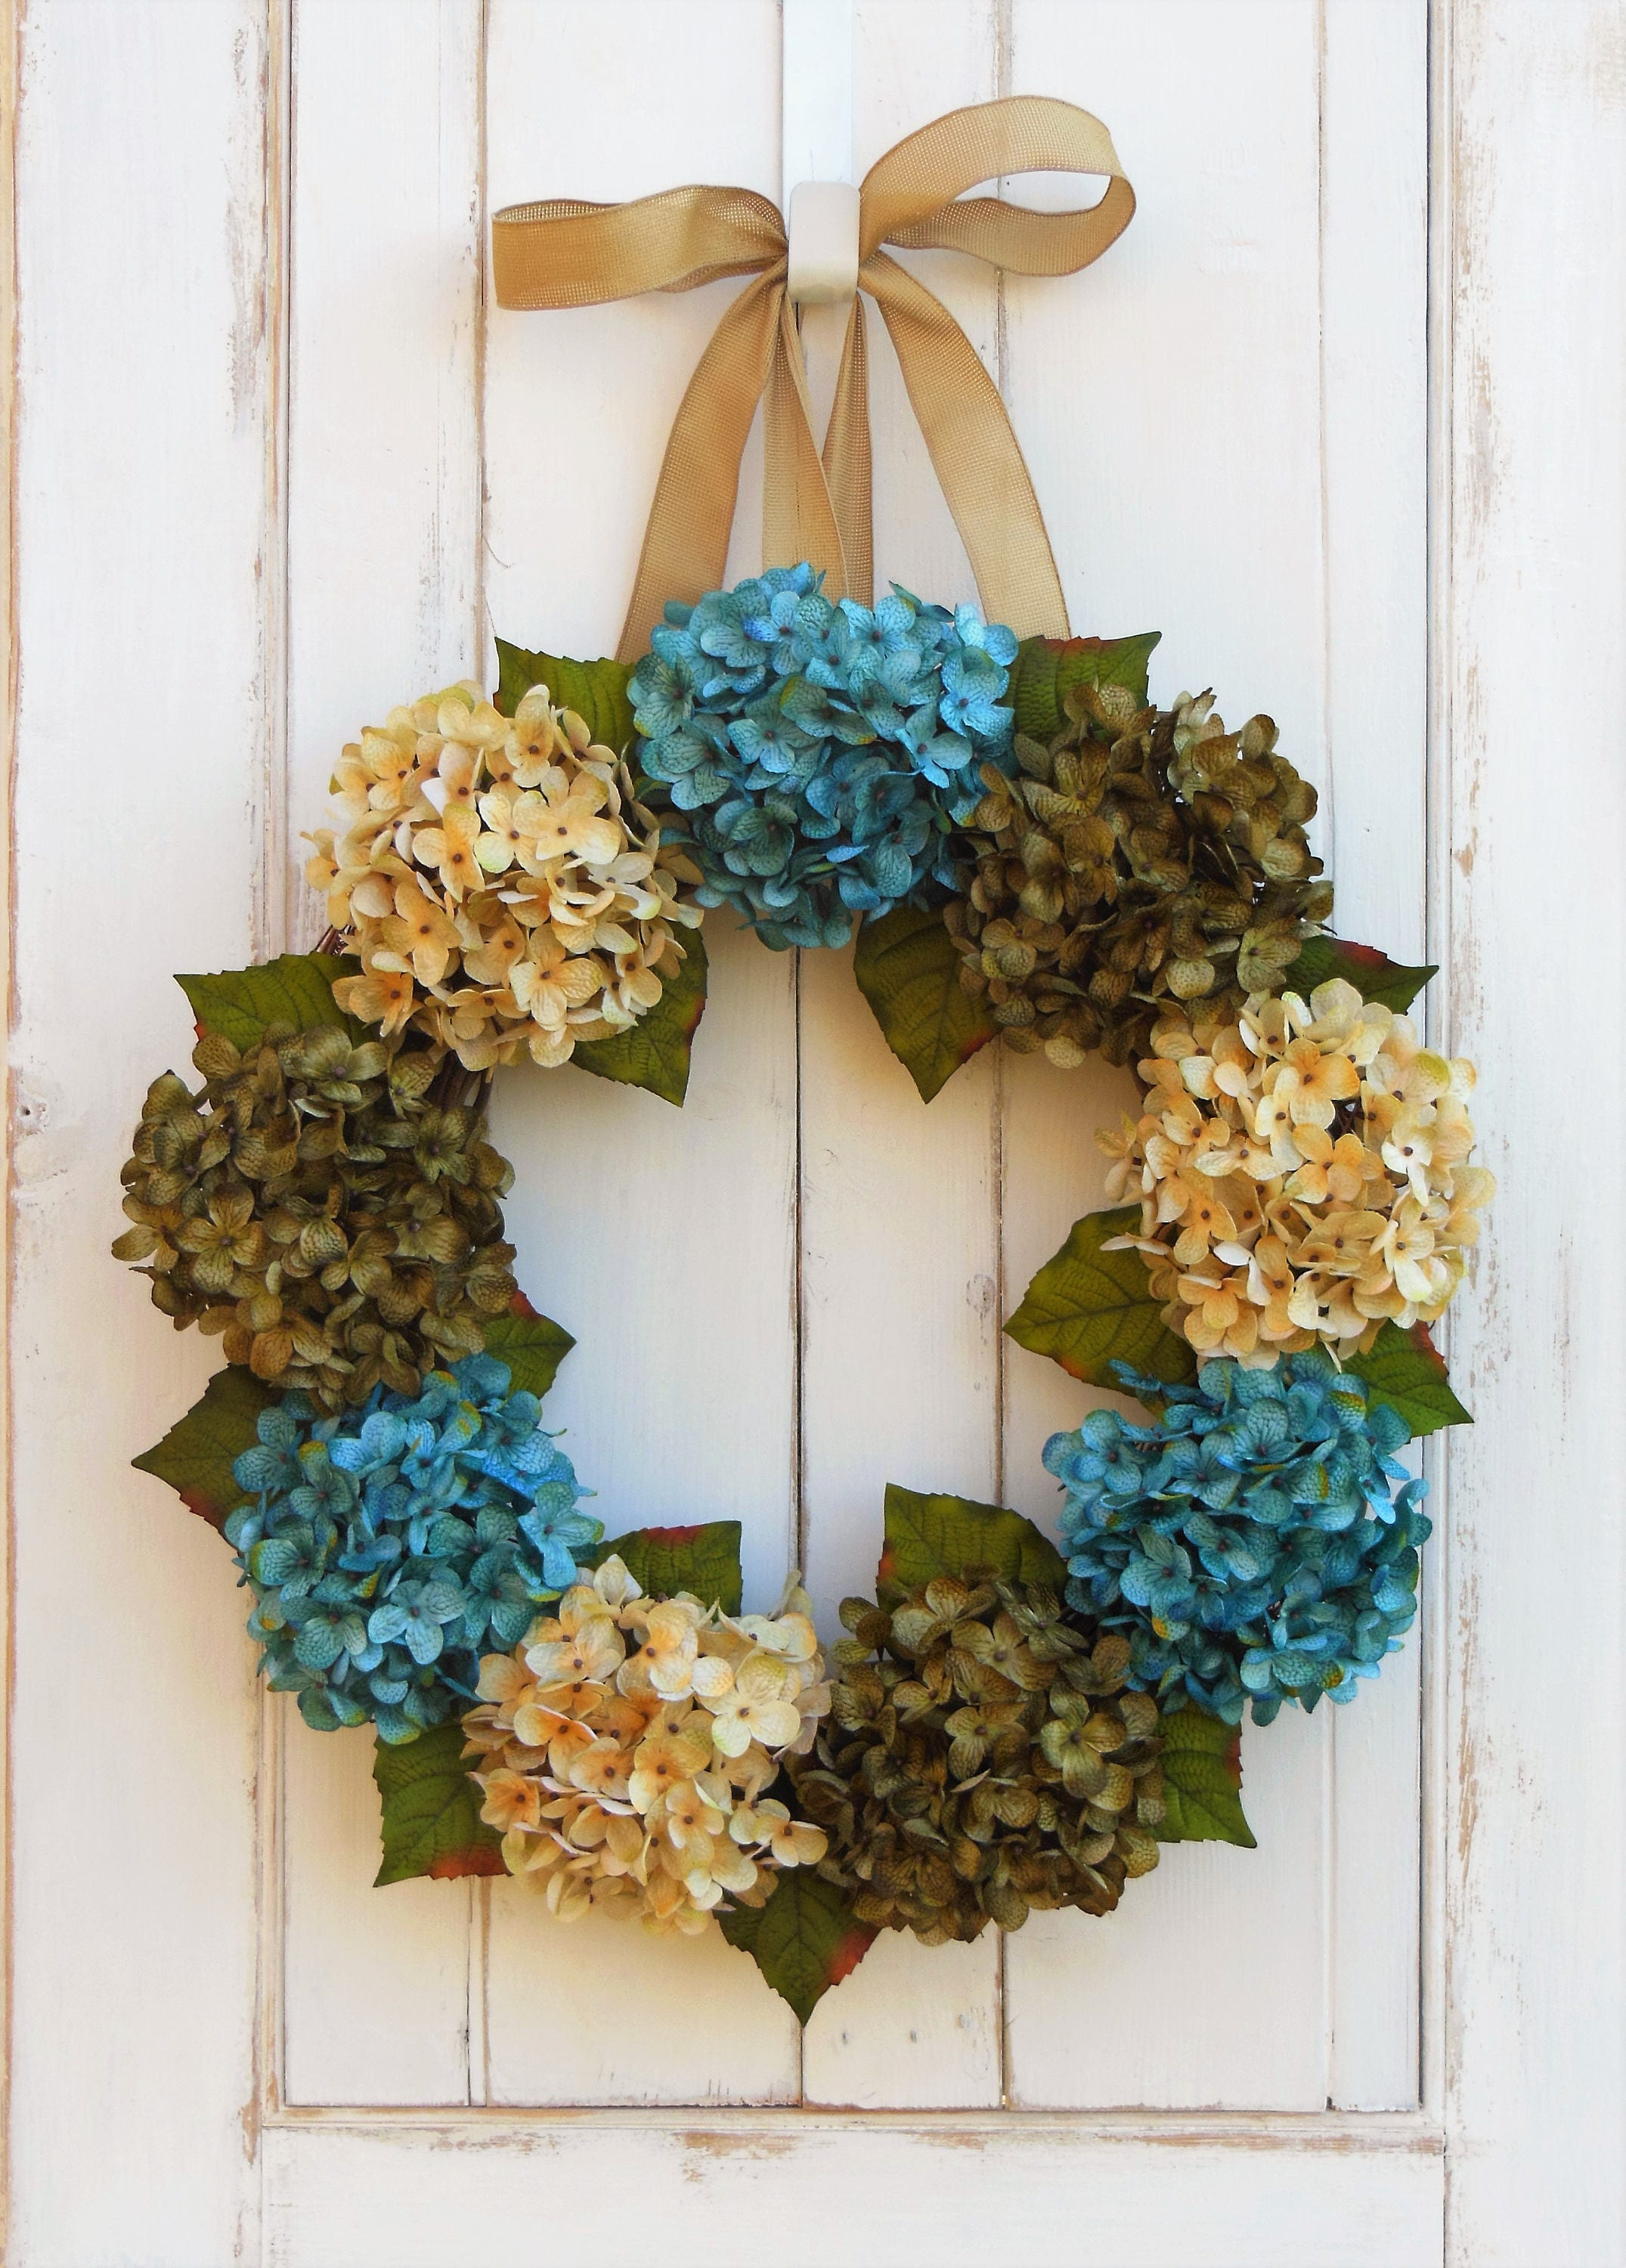 Hydrangea Wreath, Front Door Wreath, Summer Wreath, Summer Hydrangeas,  Spring Door Wreath, Wreaths Hydrangea, Wreaths, Motheru0027s Day Wreath